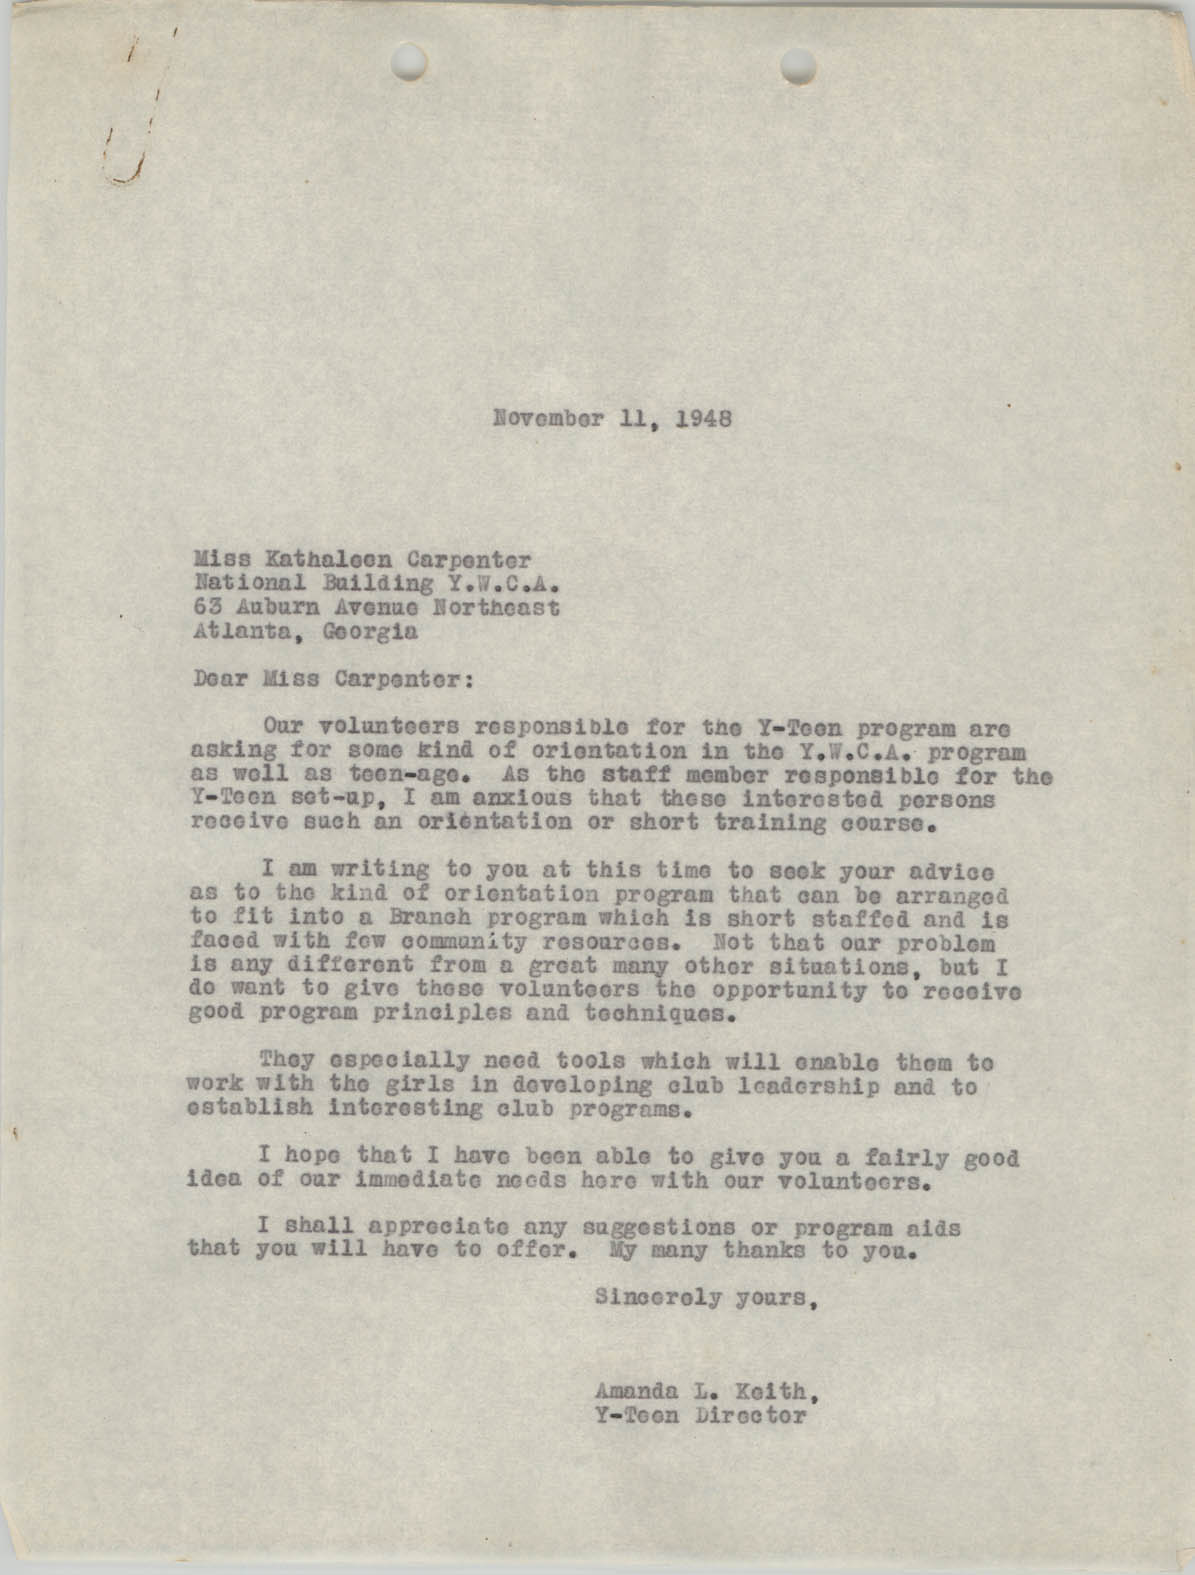 Letter from Amanda L. Keith to Kathaleen Carpenter, November 11, 1948